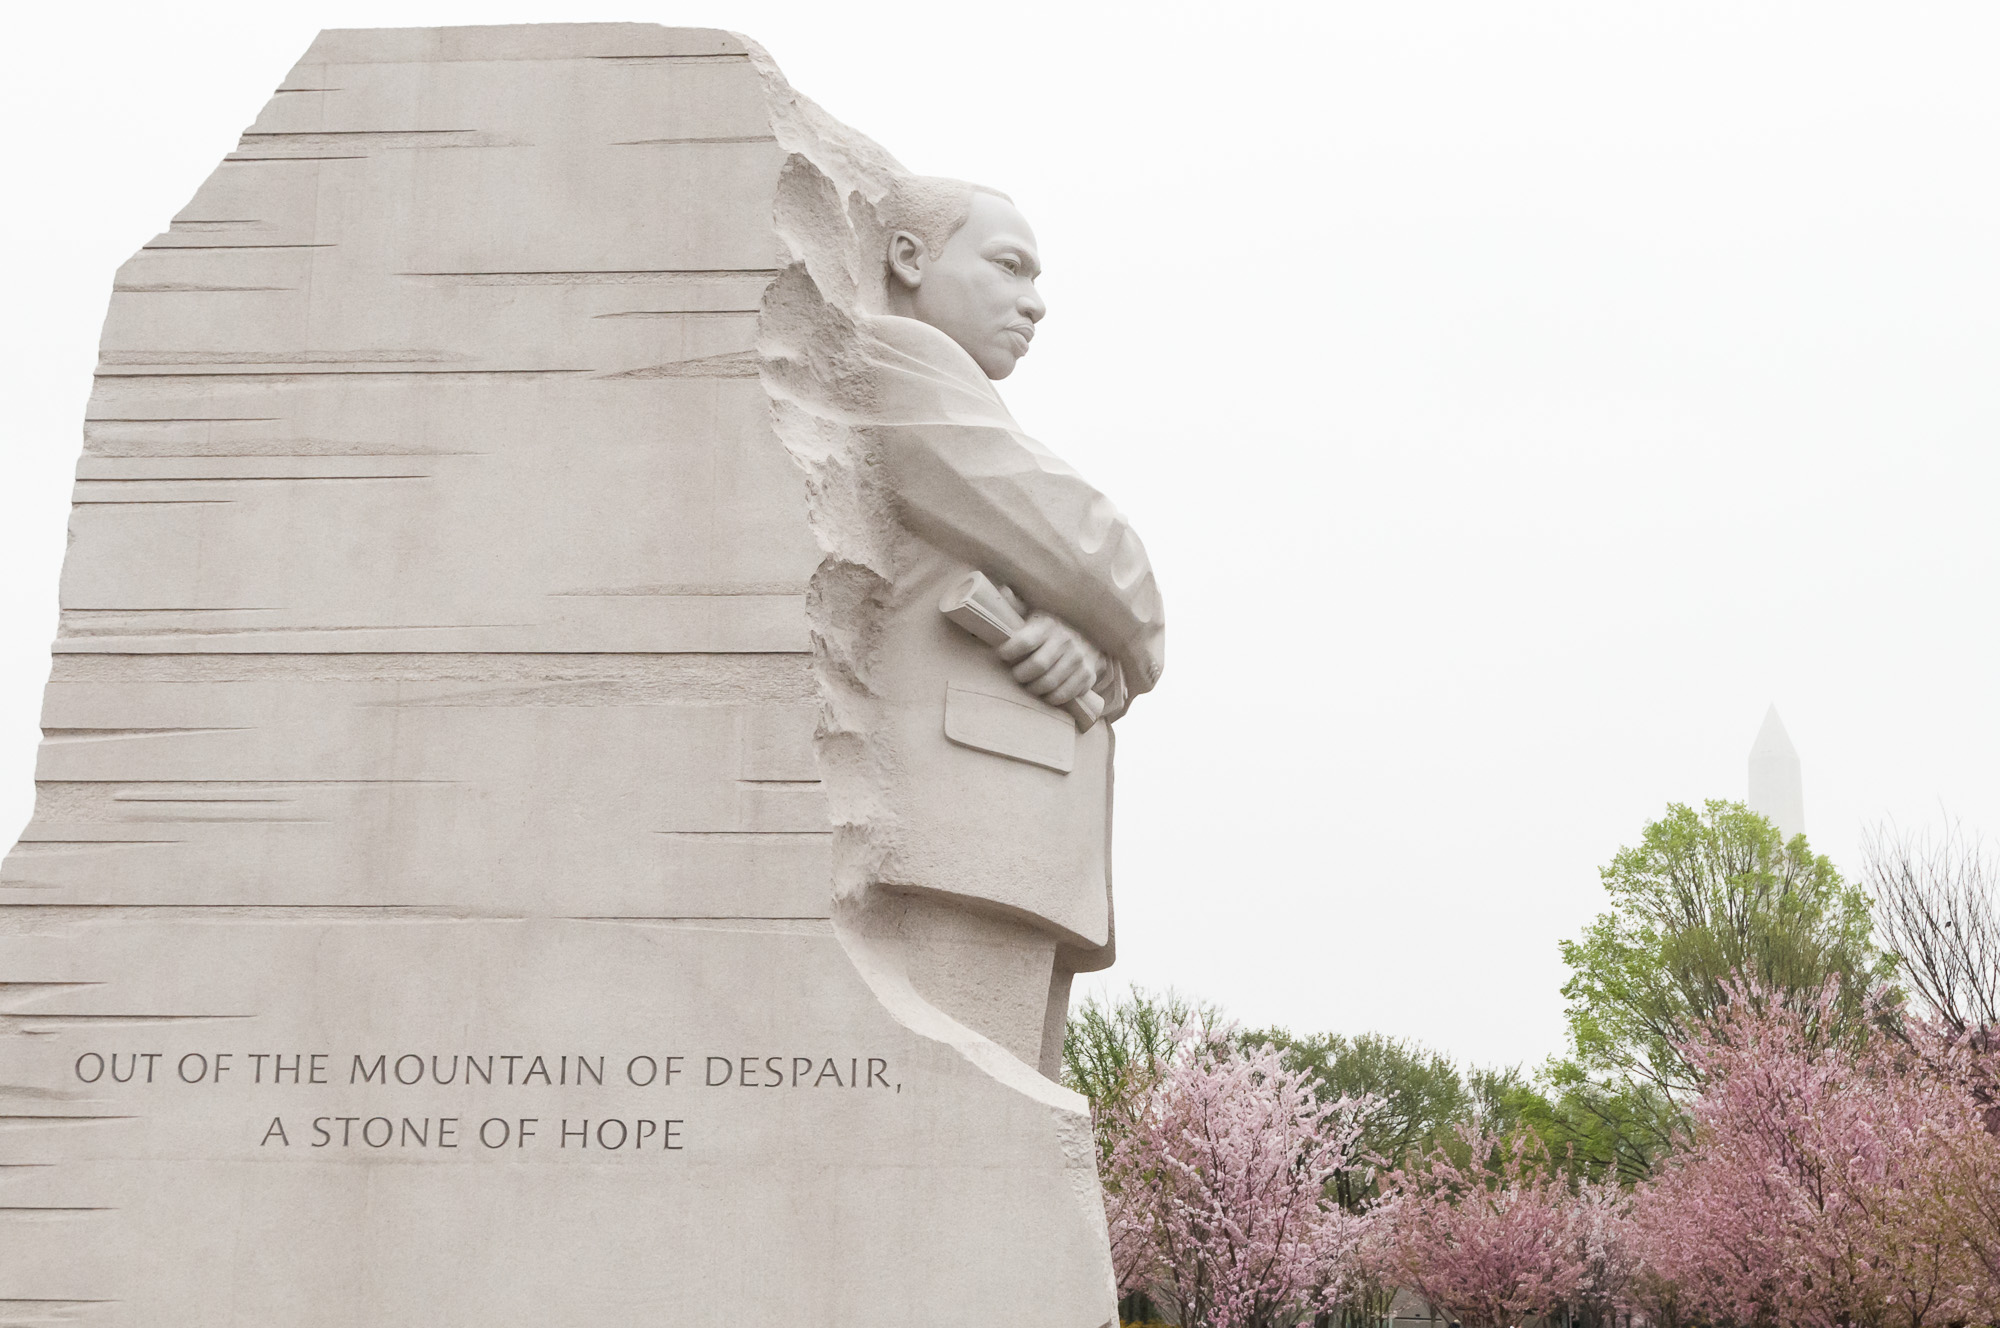 Martin Luther King, Jr. Memorial with stone of hope quote